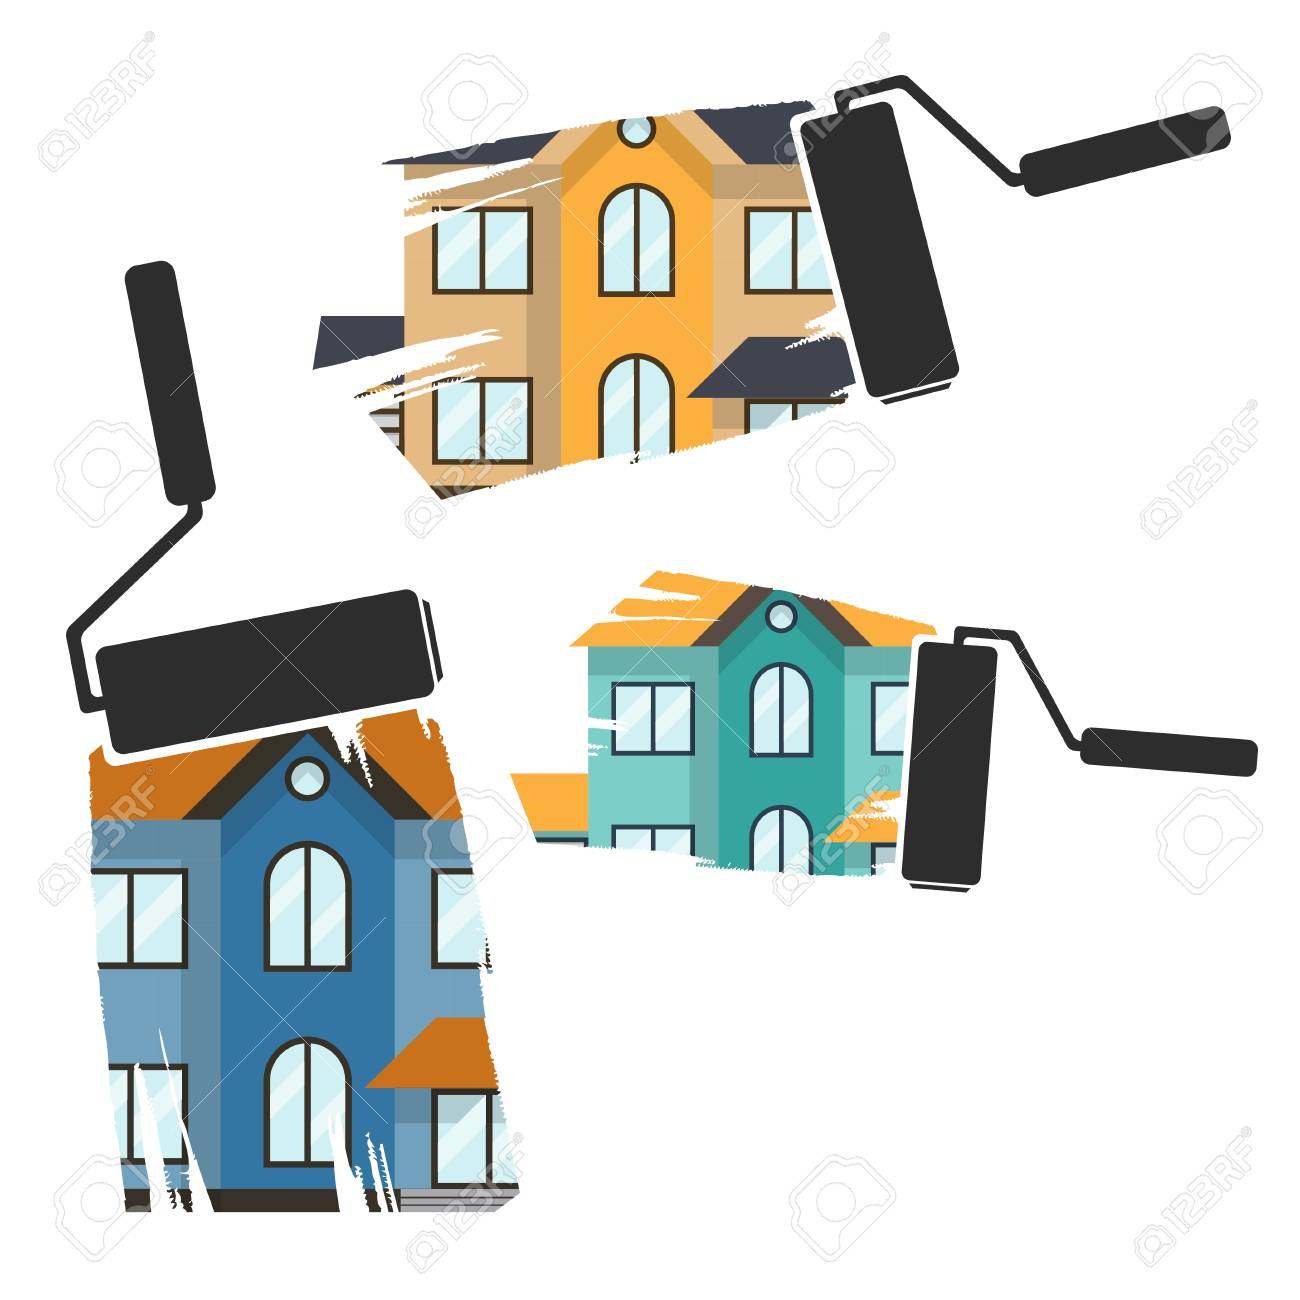 Concept Renovation Illustrations.House Remodeling,flat Design.. Royalty  Free Cliparts, Vectors, And Stock Illustration. Image 56420219.